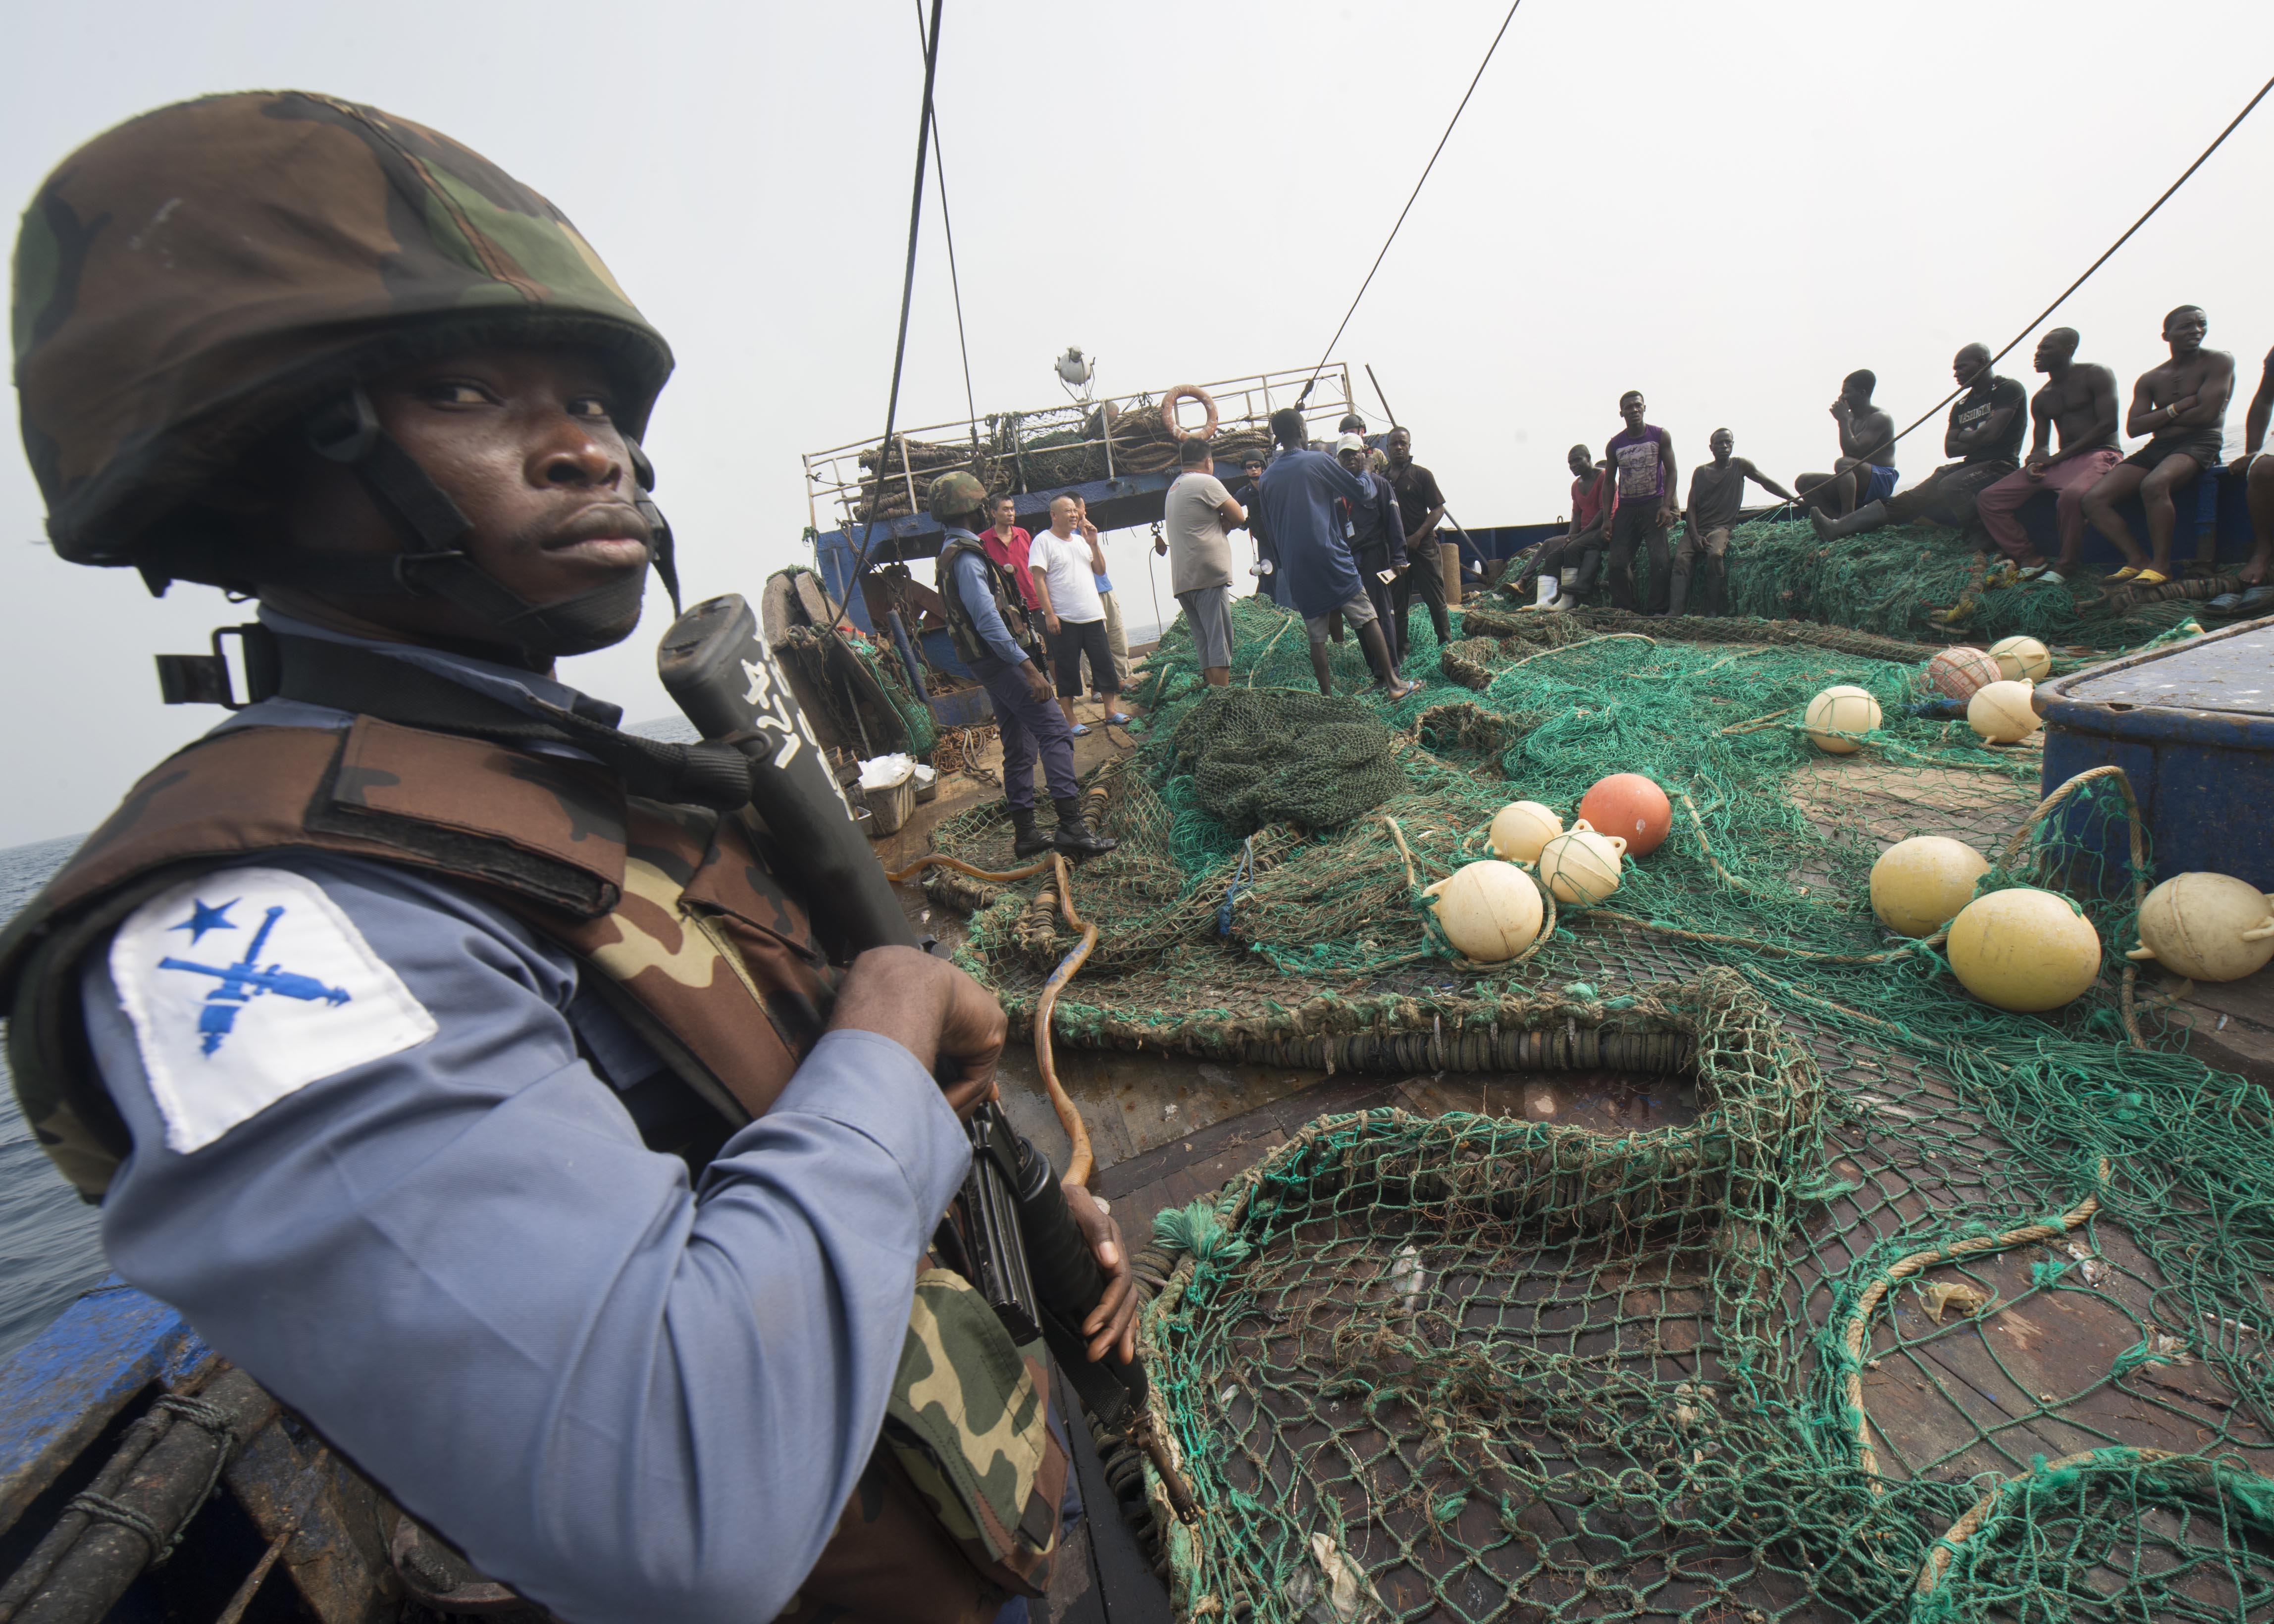 (Feb. 6, 2016) - A member of the Ghanaian Navy stands aboard a fishing vessel during a combined joint boarding operation Feb. 6, 2016. The Military Sealift Command expeditionary fast transport vessel USNS Spearhead (T-EPF 1) is on a scheduled deployment to the U.S. 6th Fleet area of operations to support the international collaborative capacity-building program Africa Partnership Station.